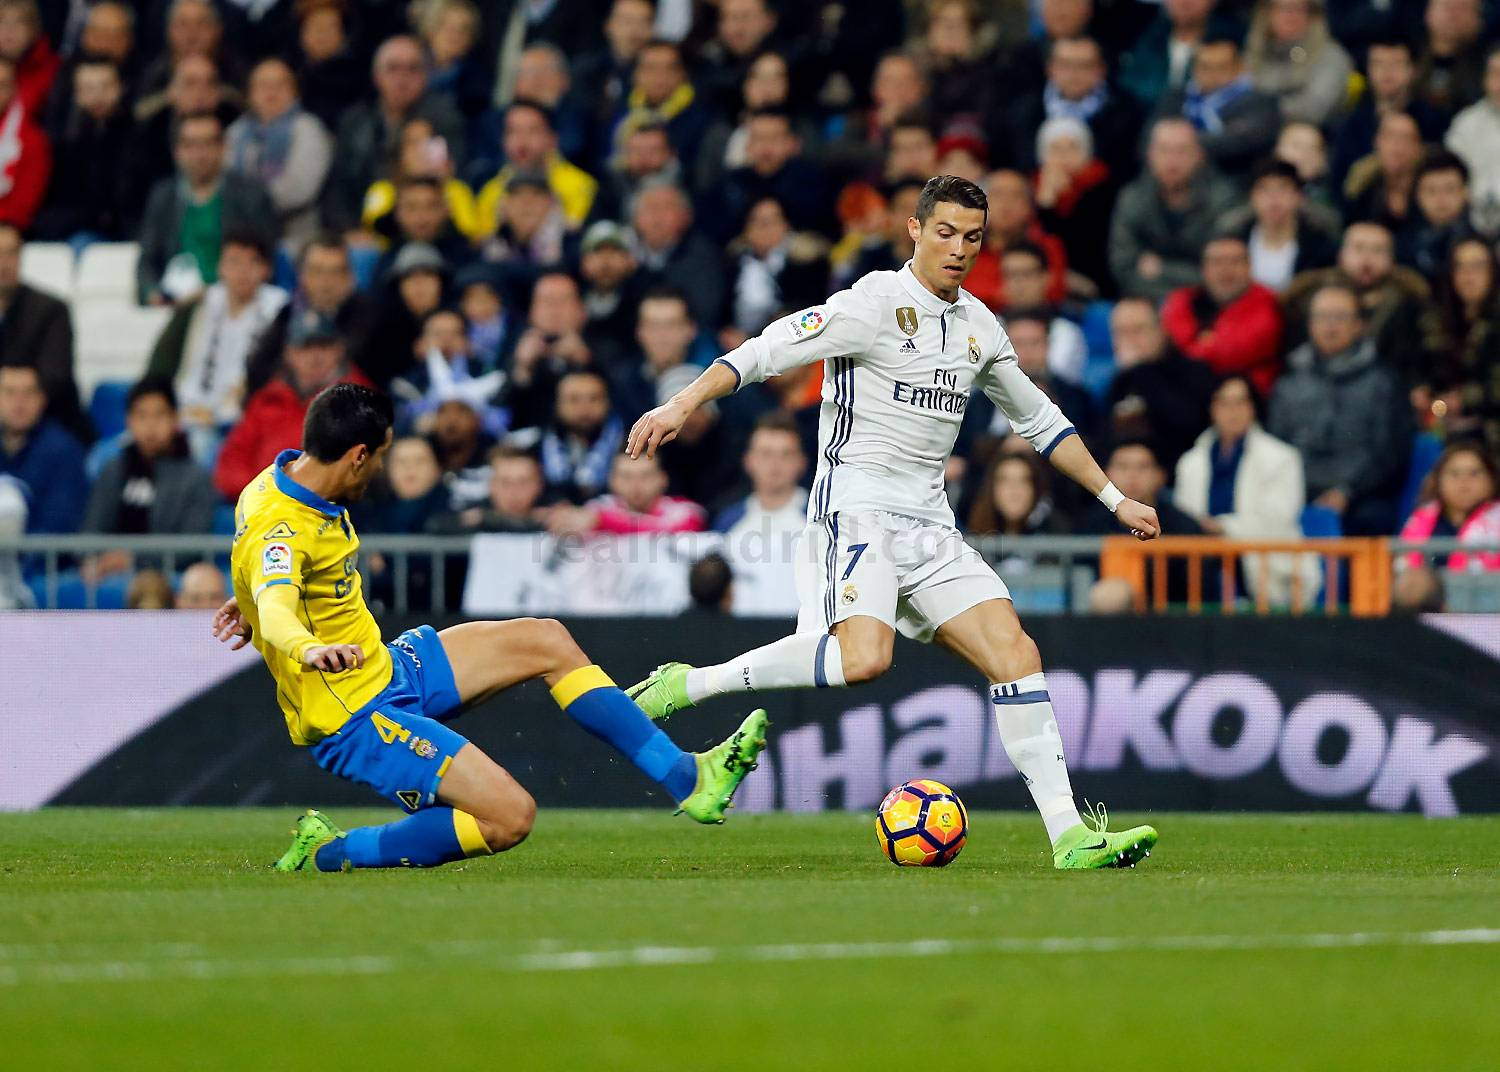 Real Madrid - Real Madrid - Las Palmas - 01-03-2017